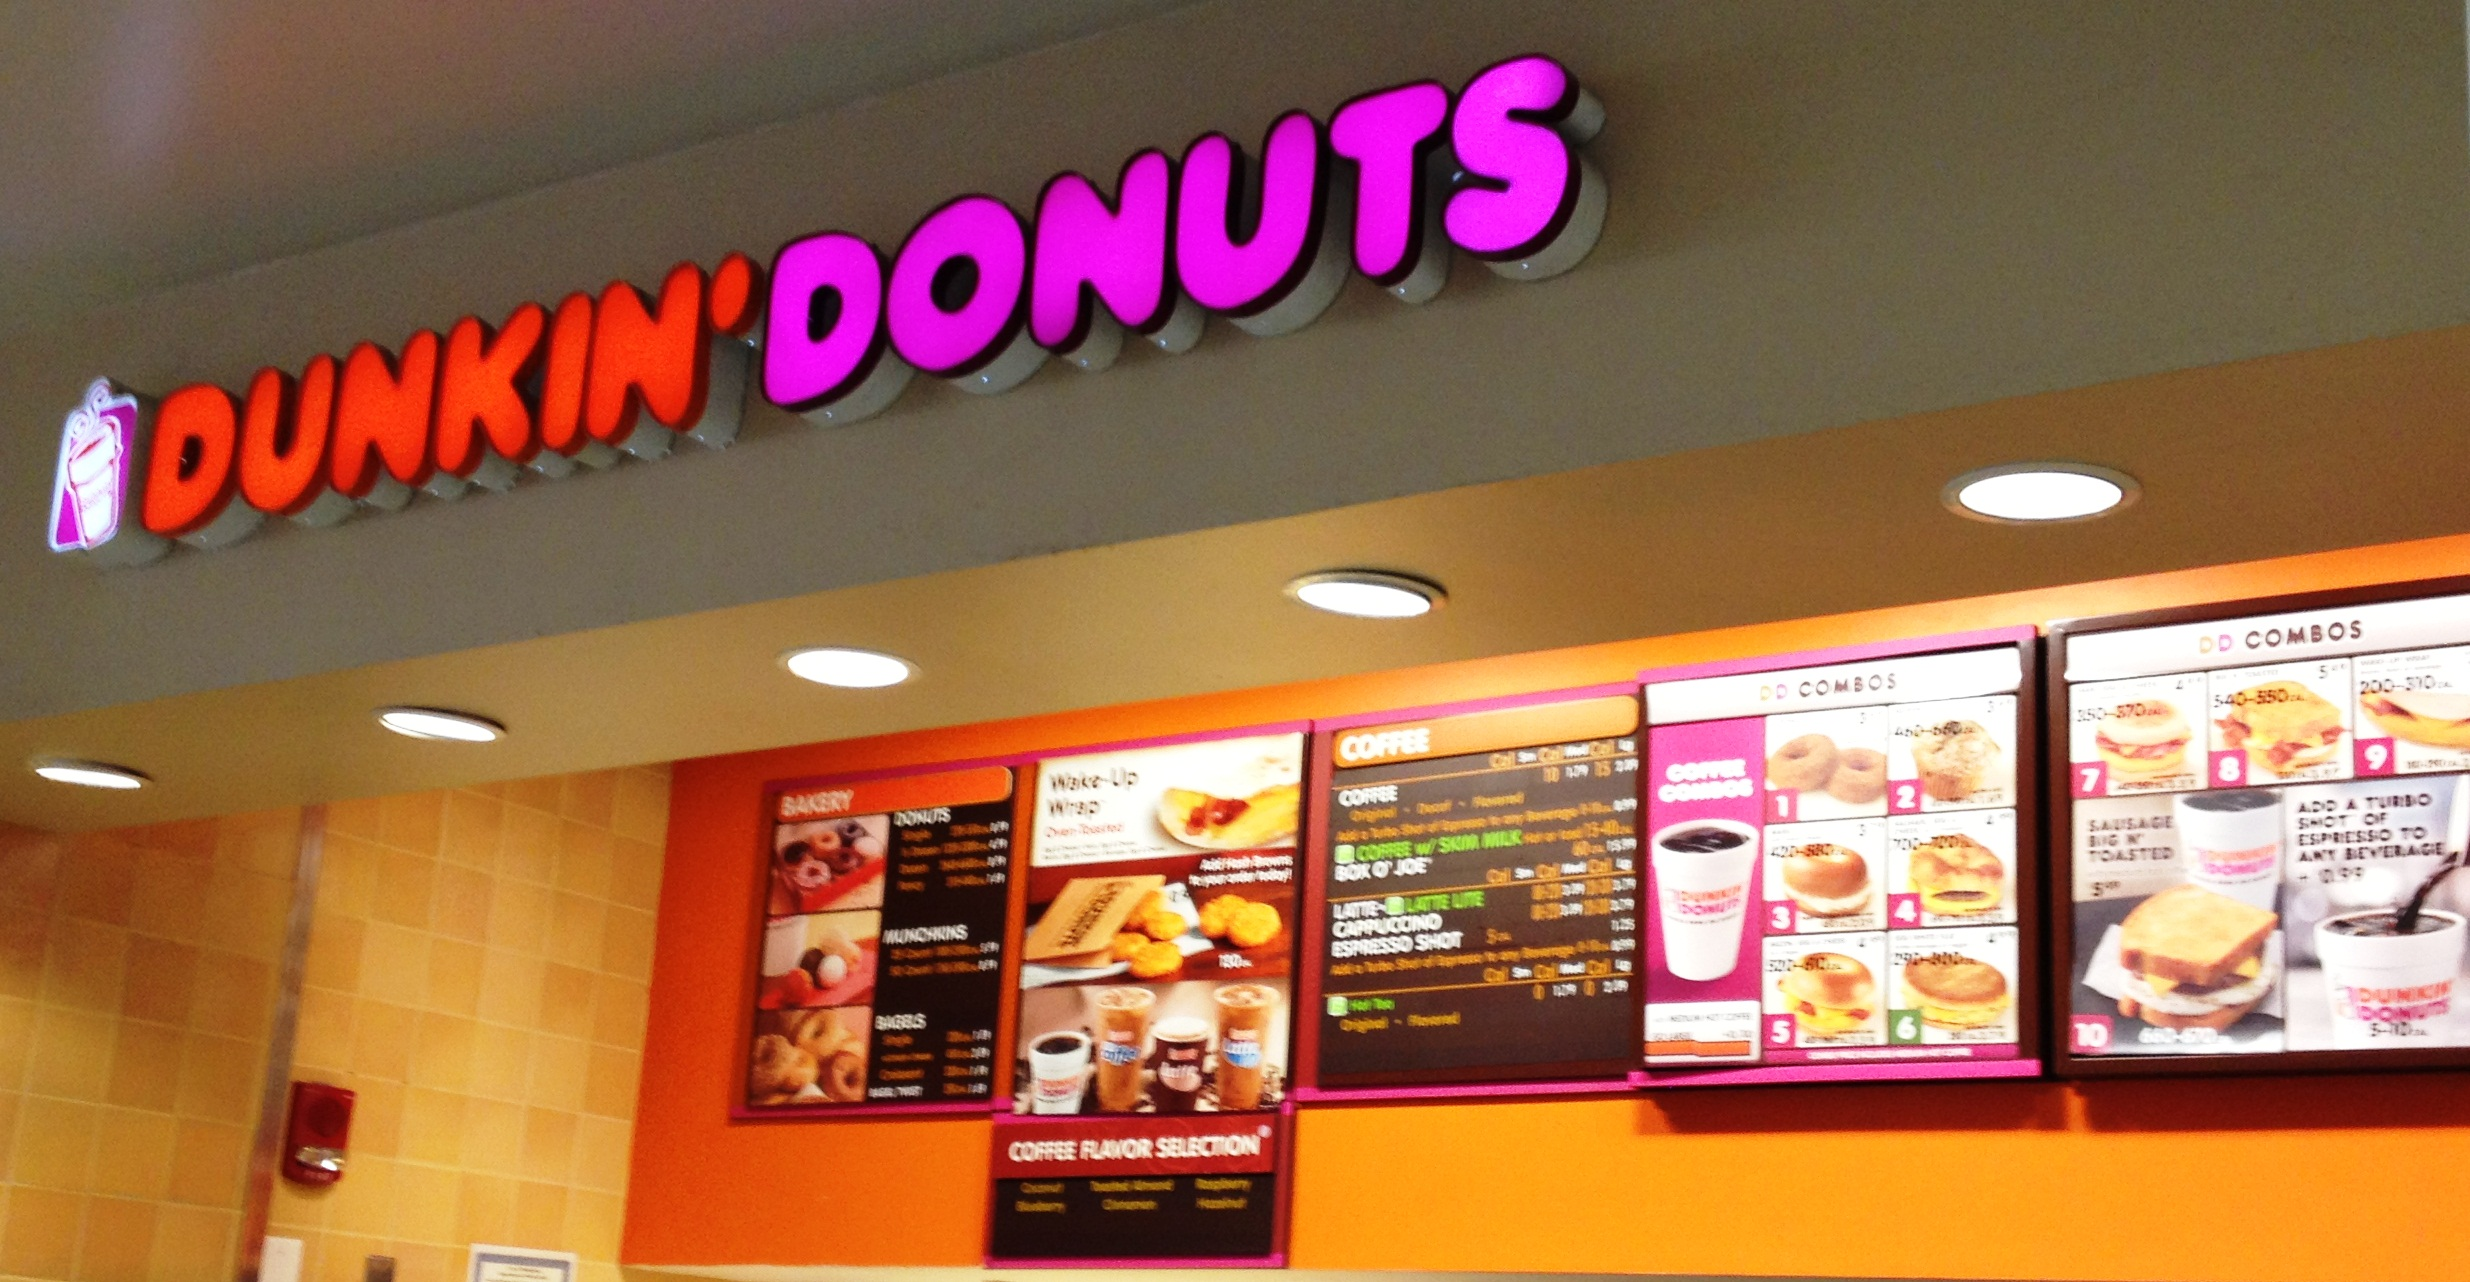 The world and storageio runs on dunkin donuts